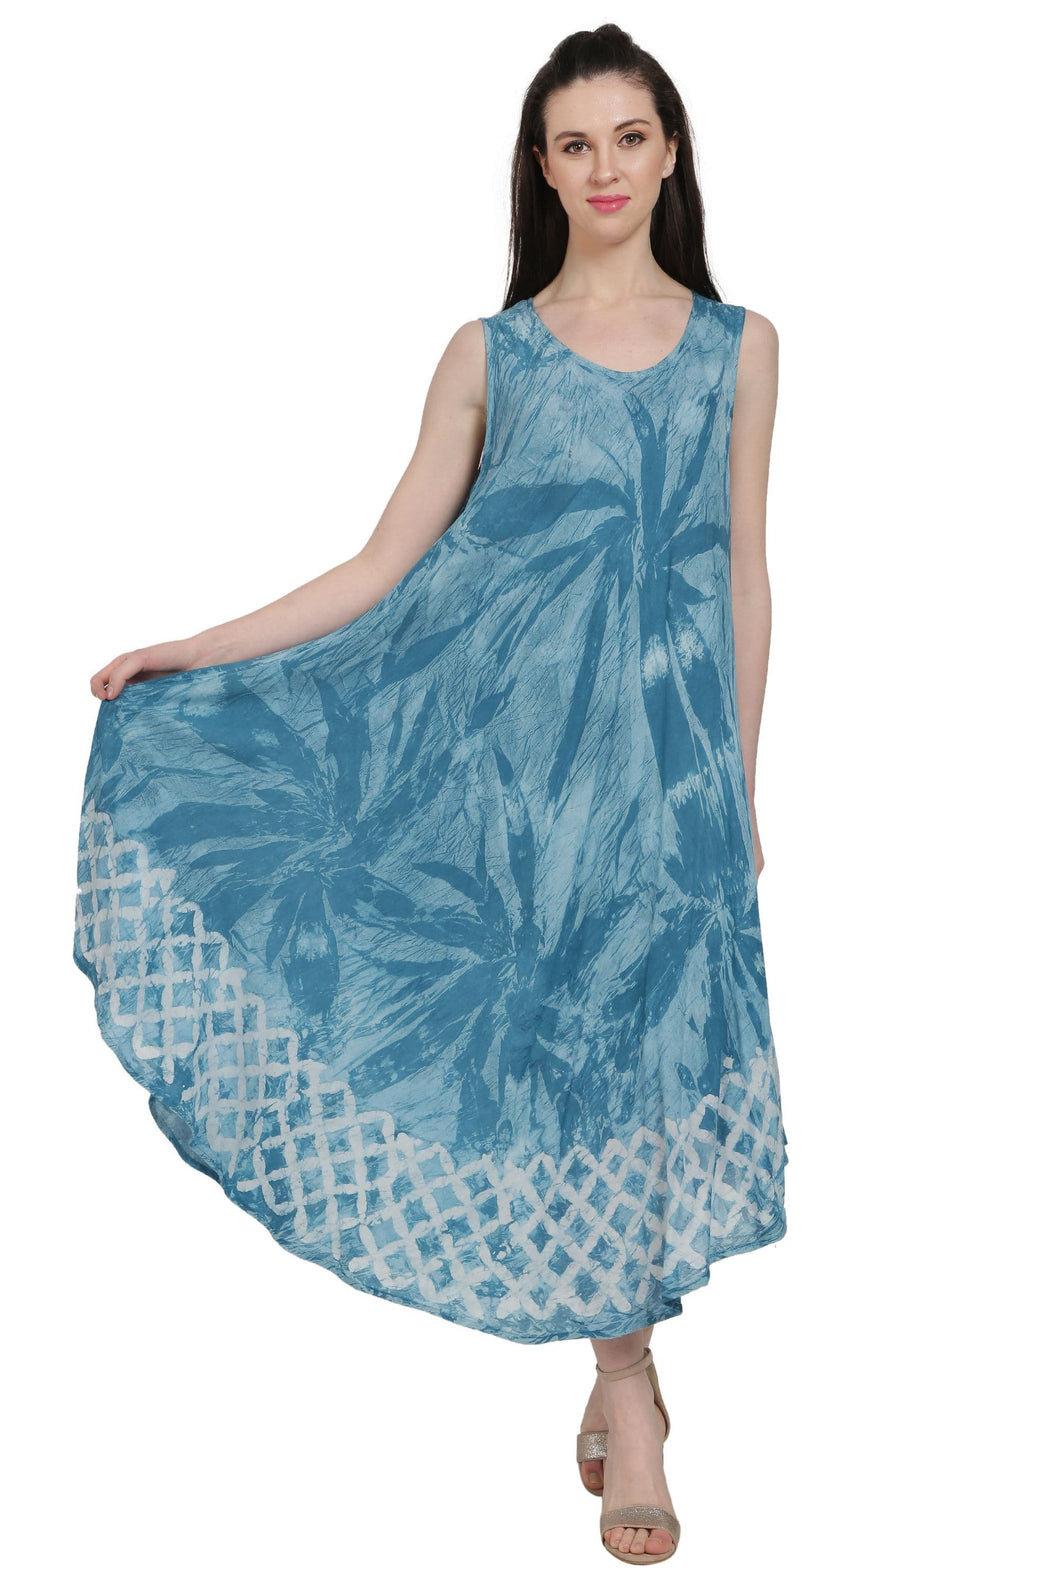 Sleeveless Palm Tree Tie Dye Dress UD52-2321 - Advance Apparels Inc